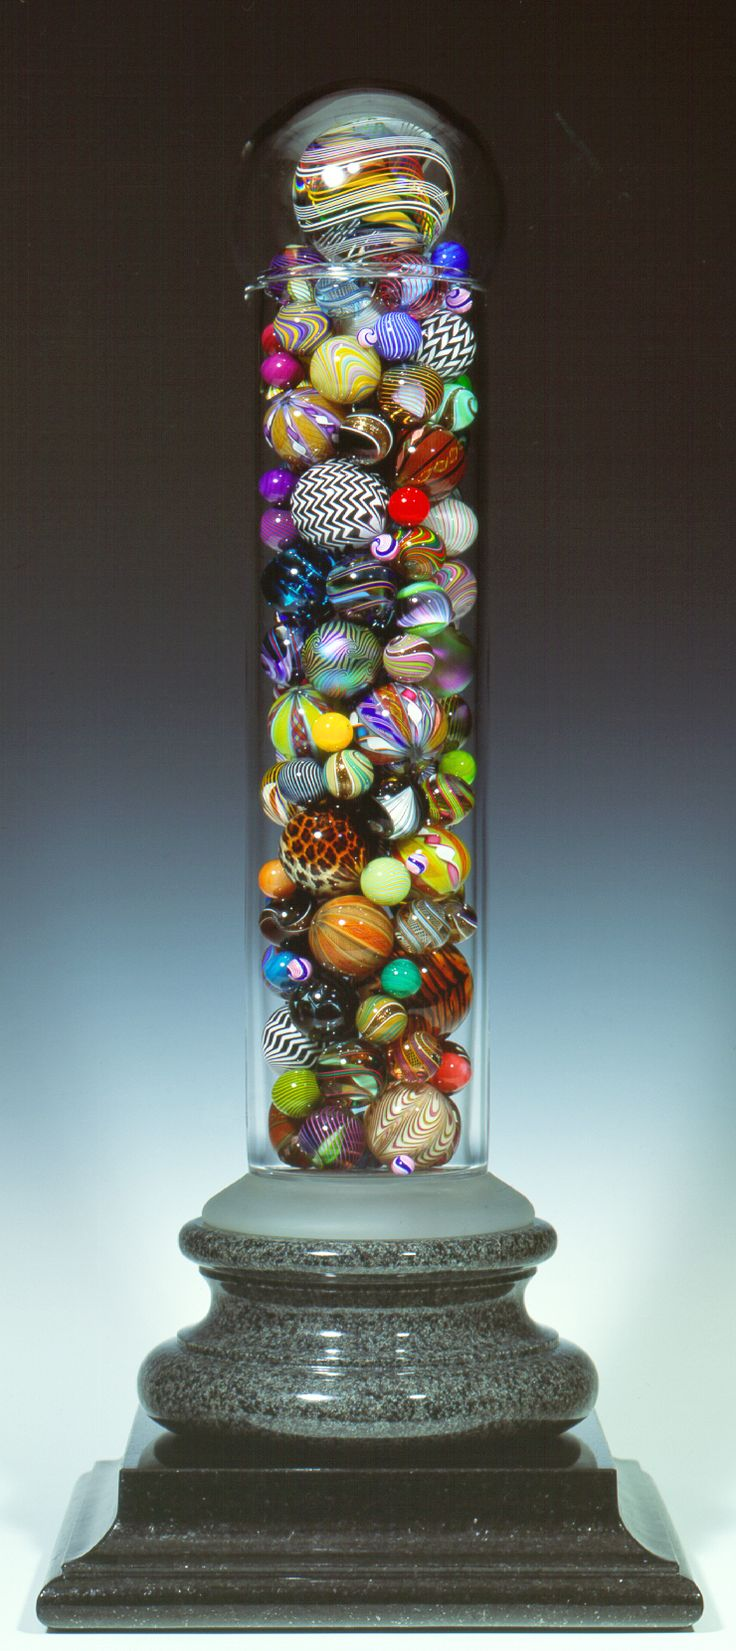 Jar Of Marbles Story : Best images about klinkekuler canicas marbles on